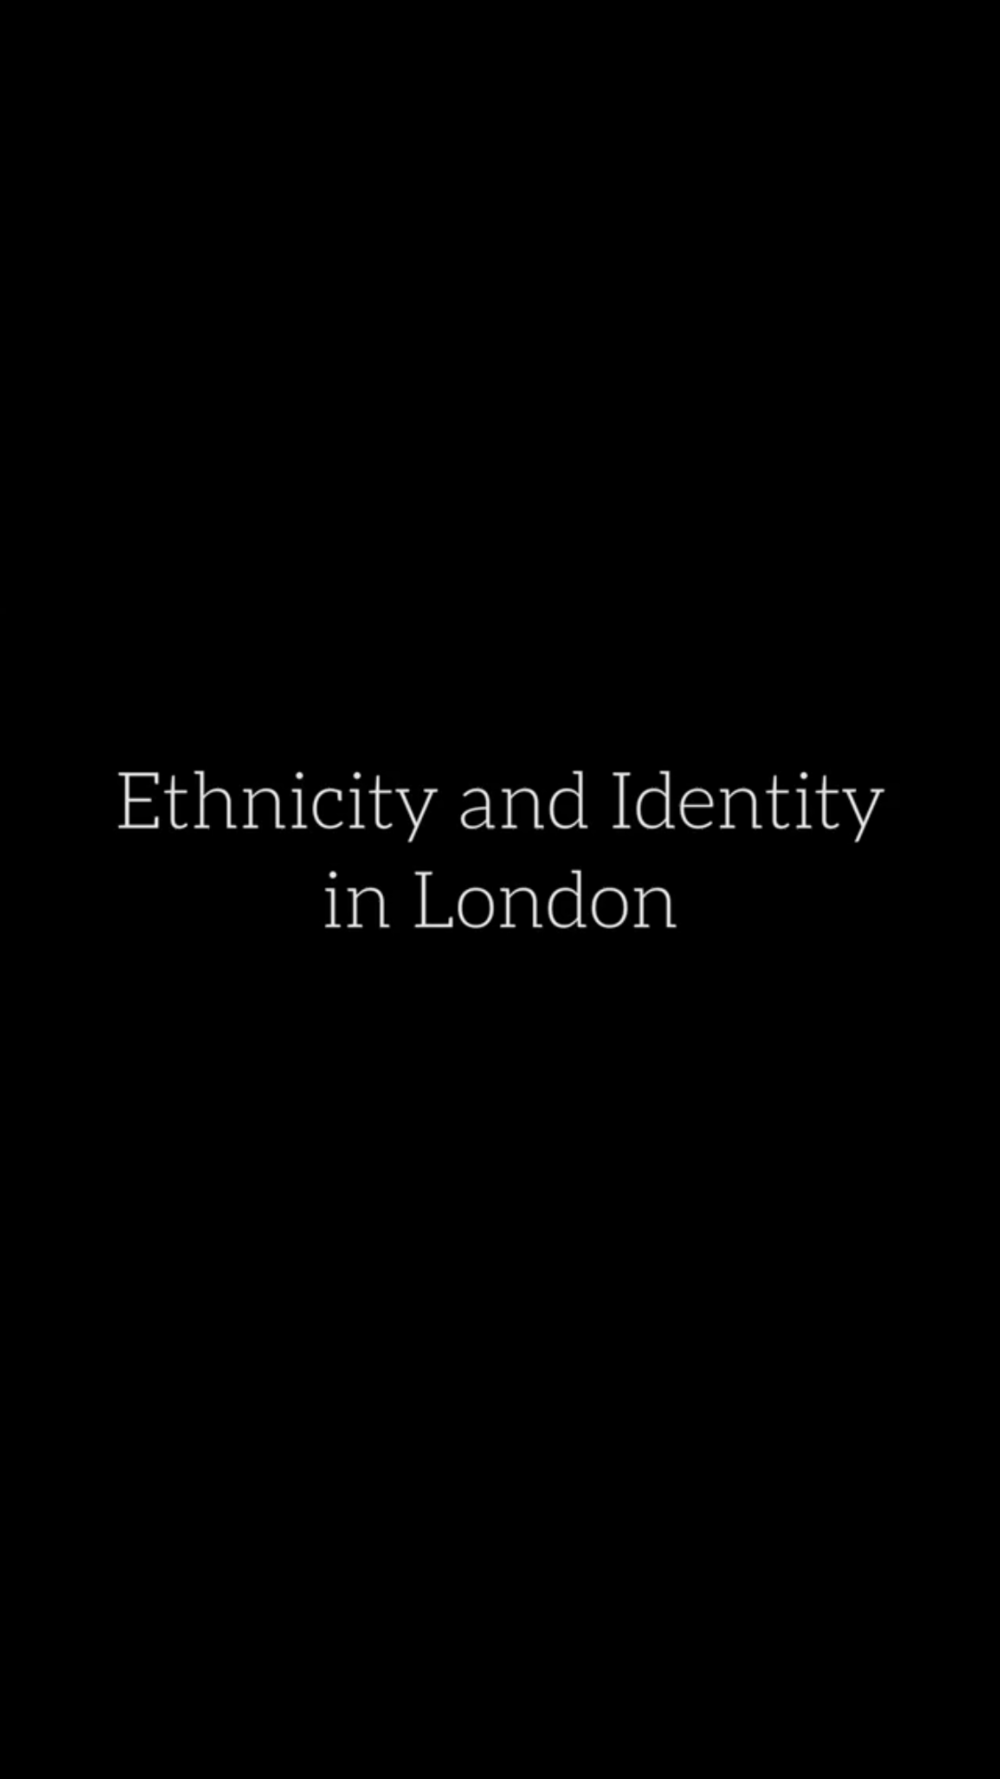 A documentary I made last year. Huge Thank you to The Somali Mother and Child Welfare Organisation